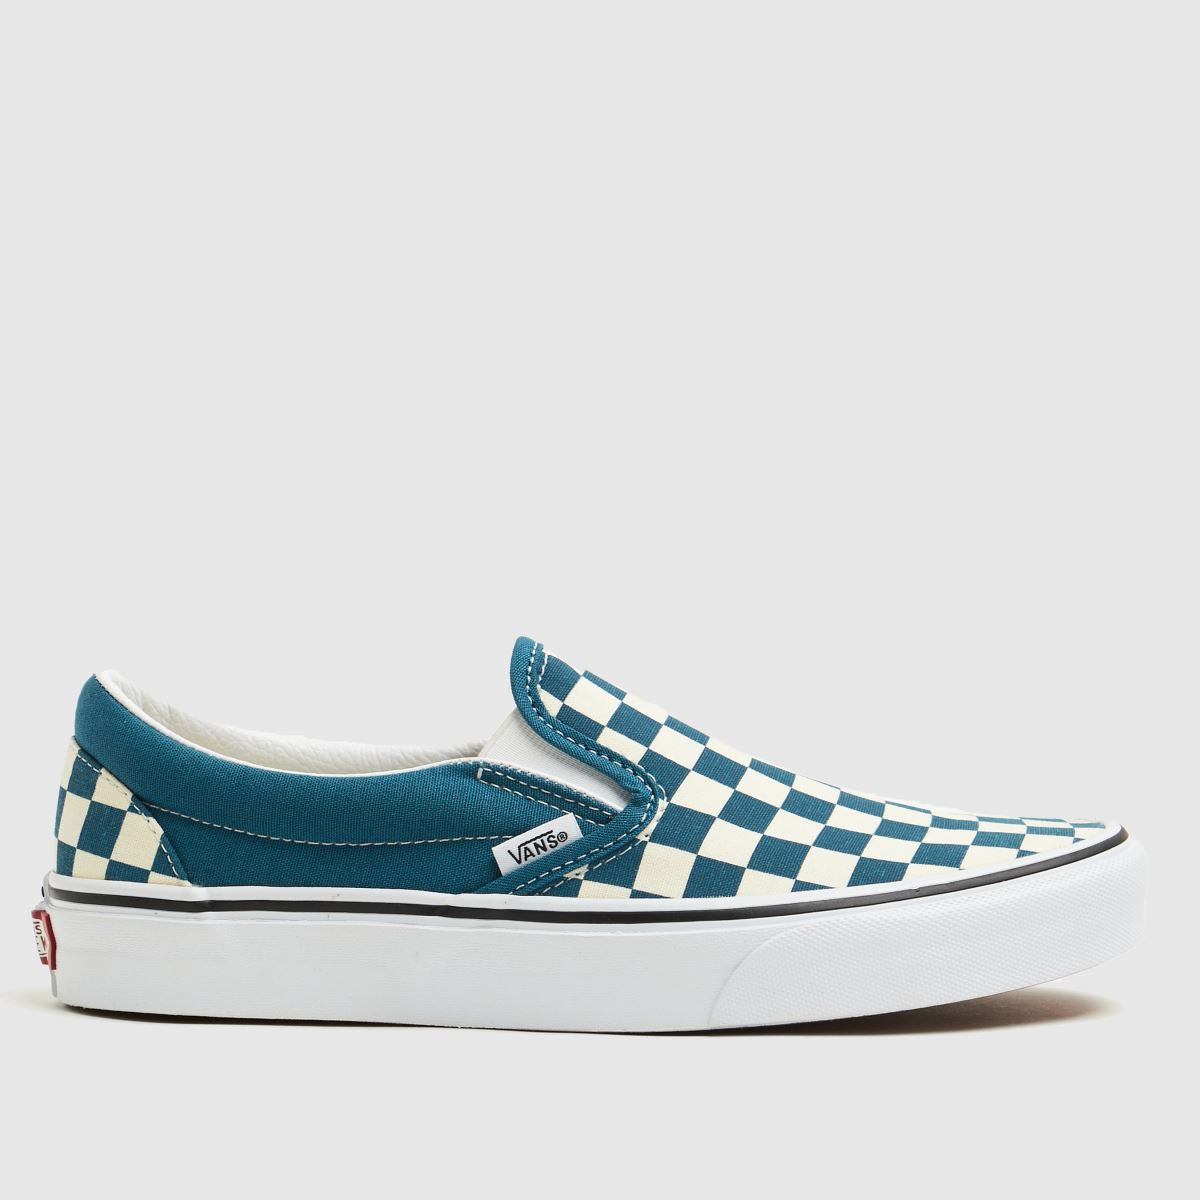 Vans Blue Classic Slip On Trainers